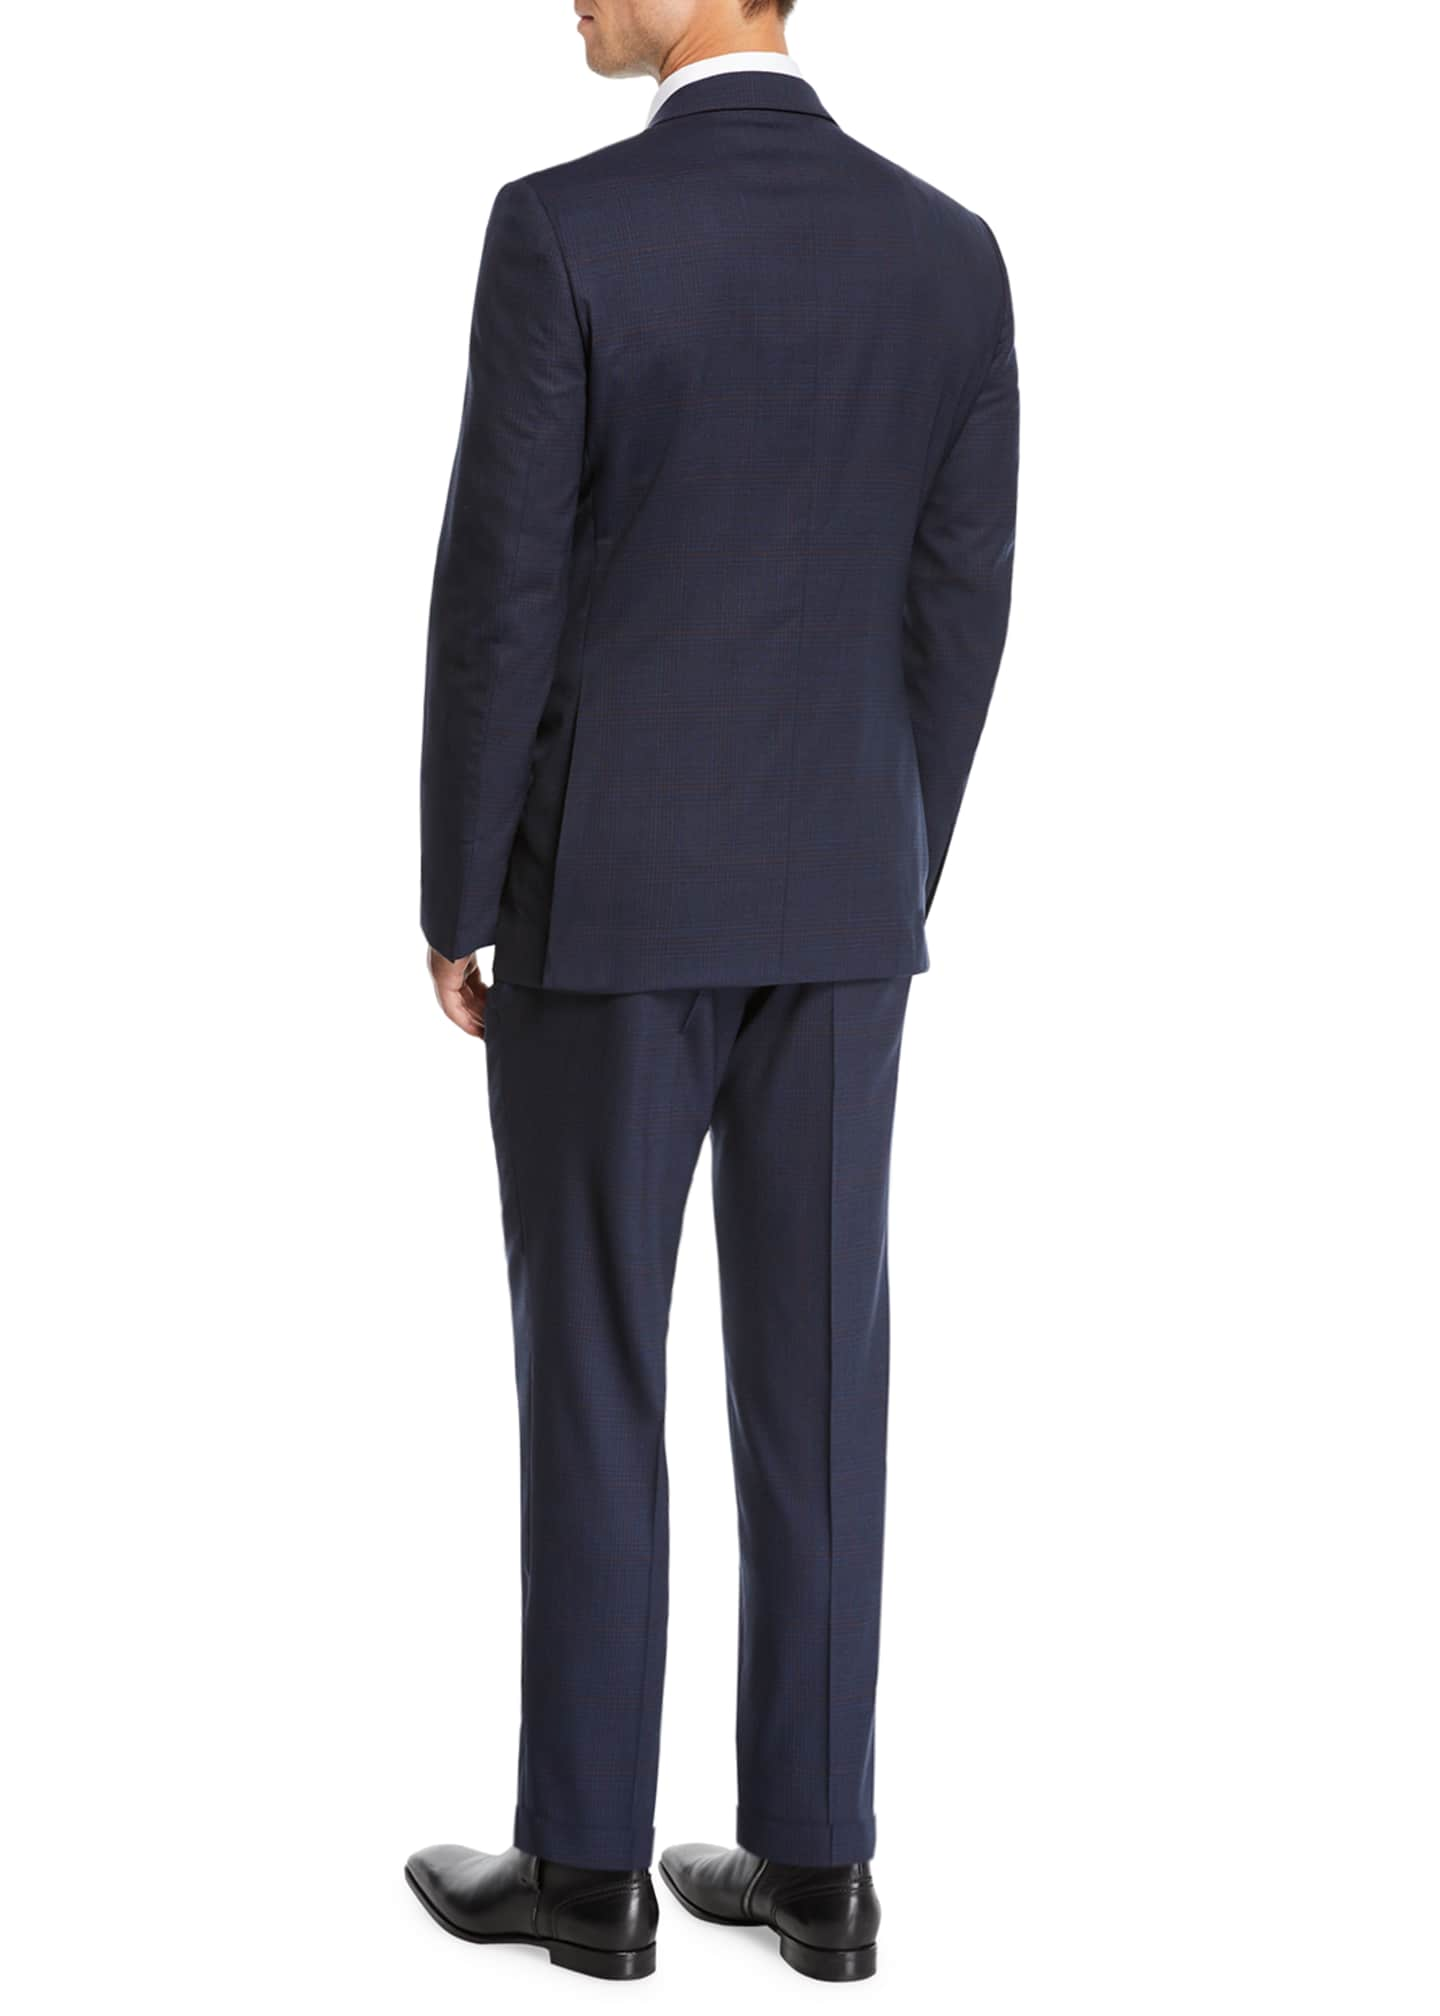 Image 3 of 4: Men's two-piece wool plaid suit